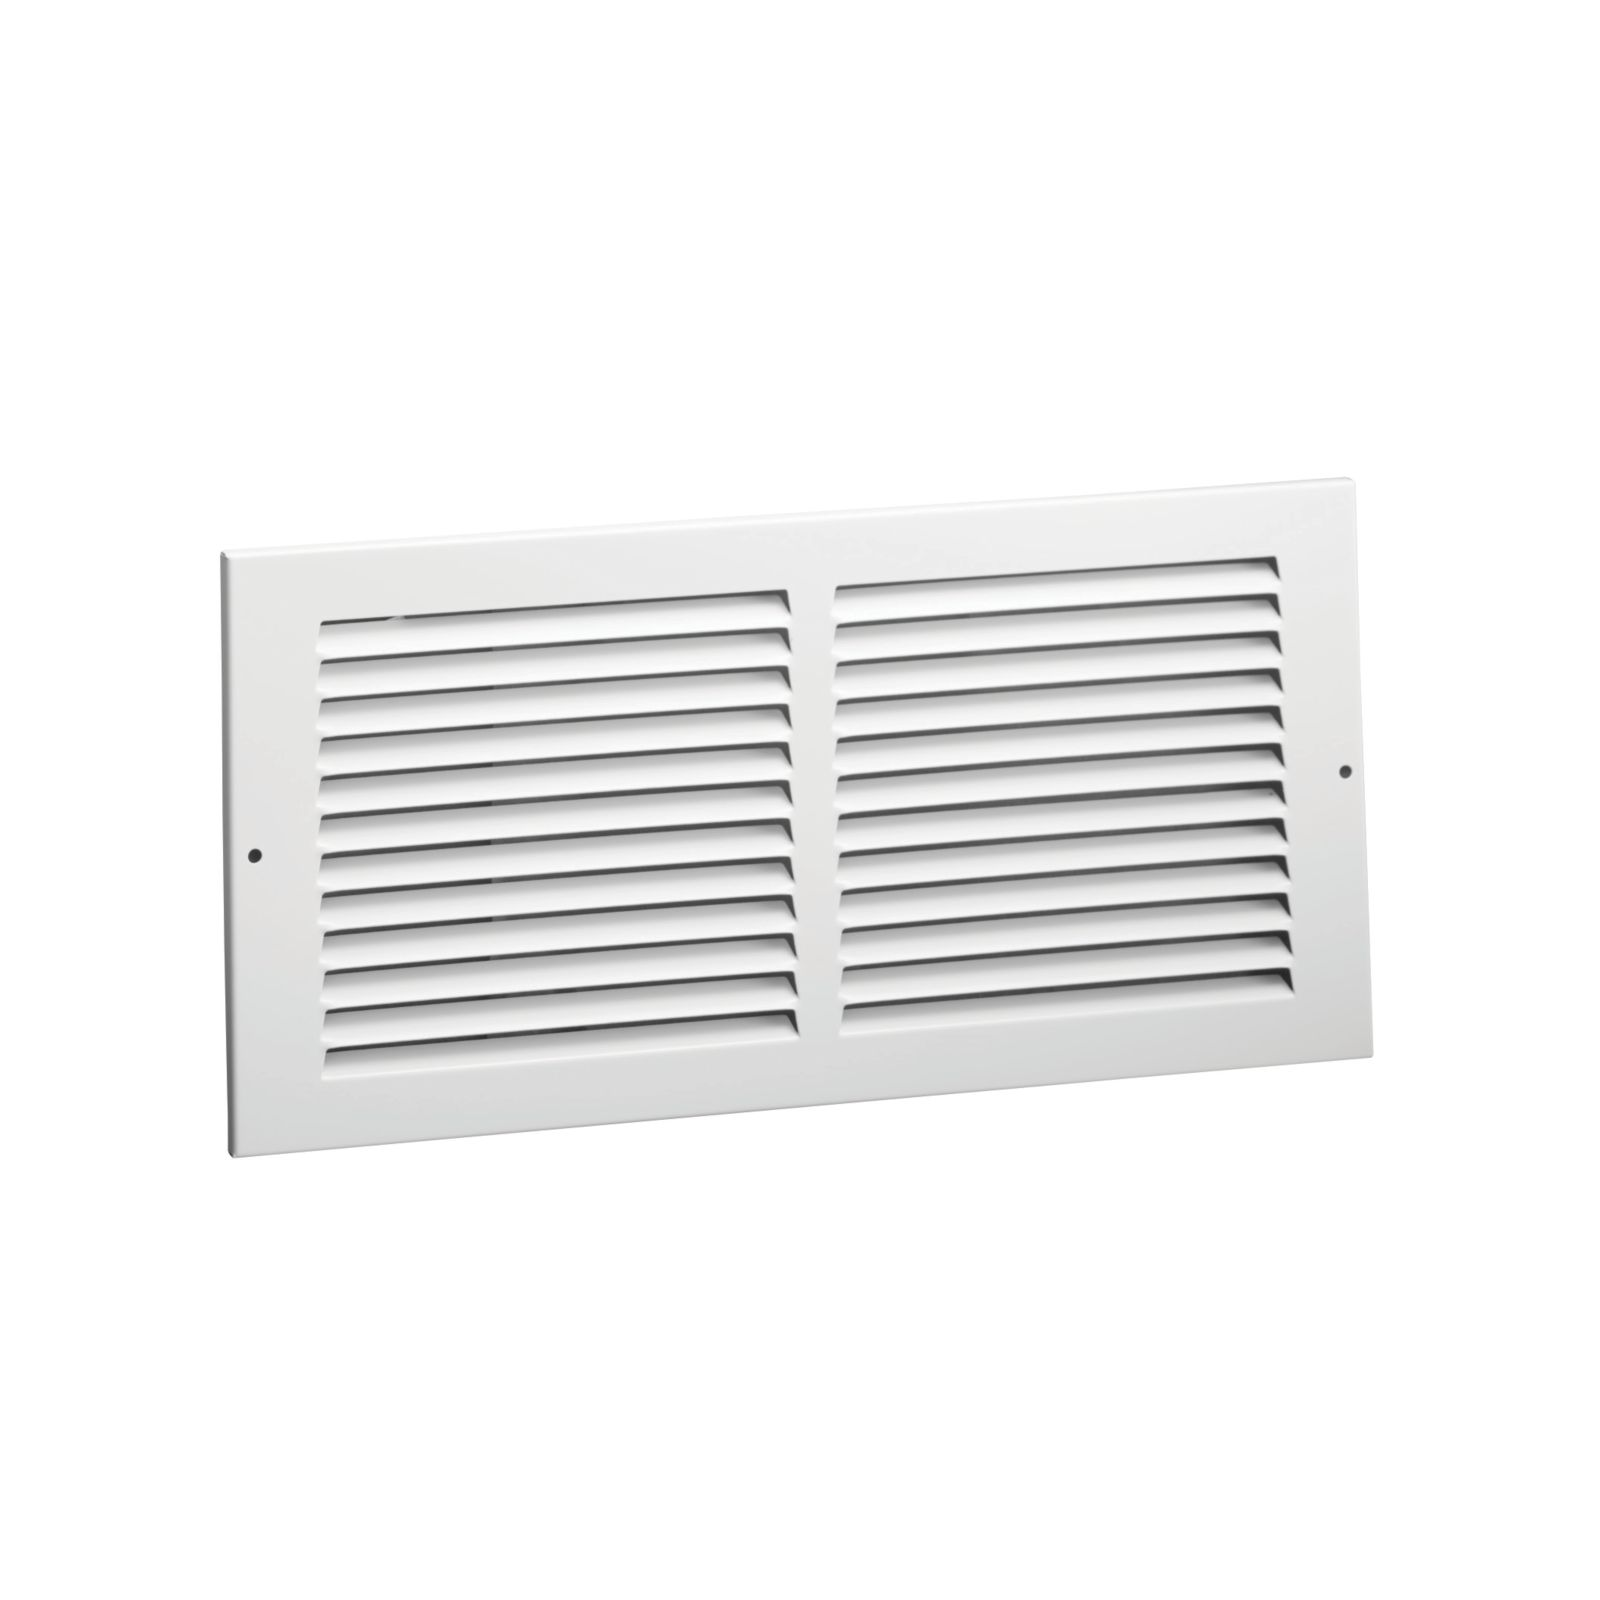 "Hart & Cooley 703991 - #672M Steel Return Air Grille, White Finish, 12"" X 8"""